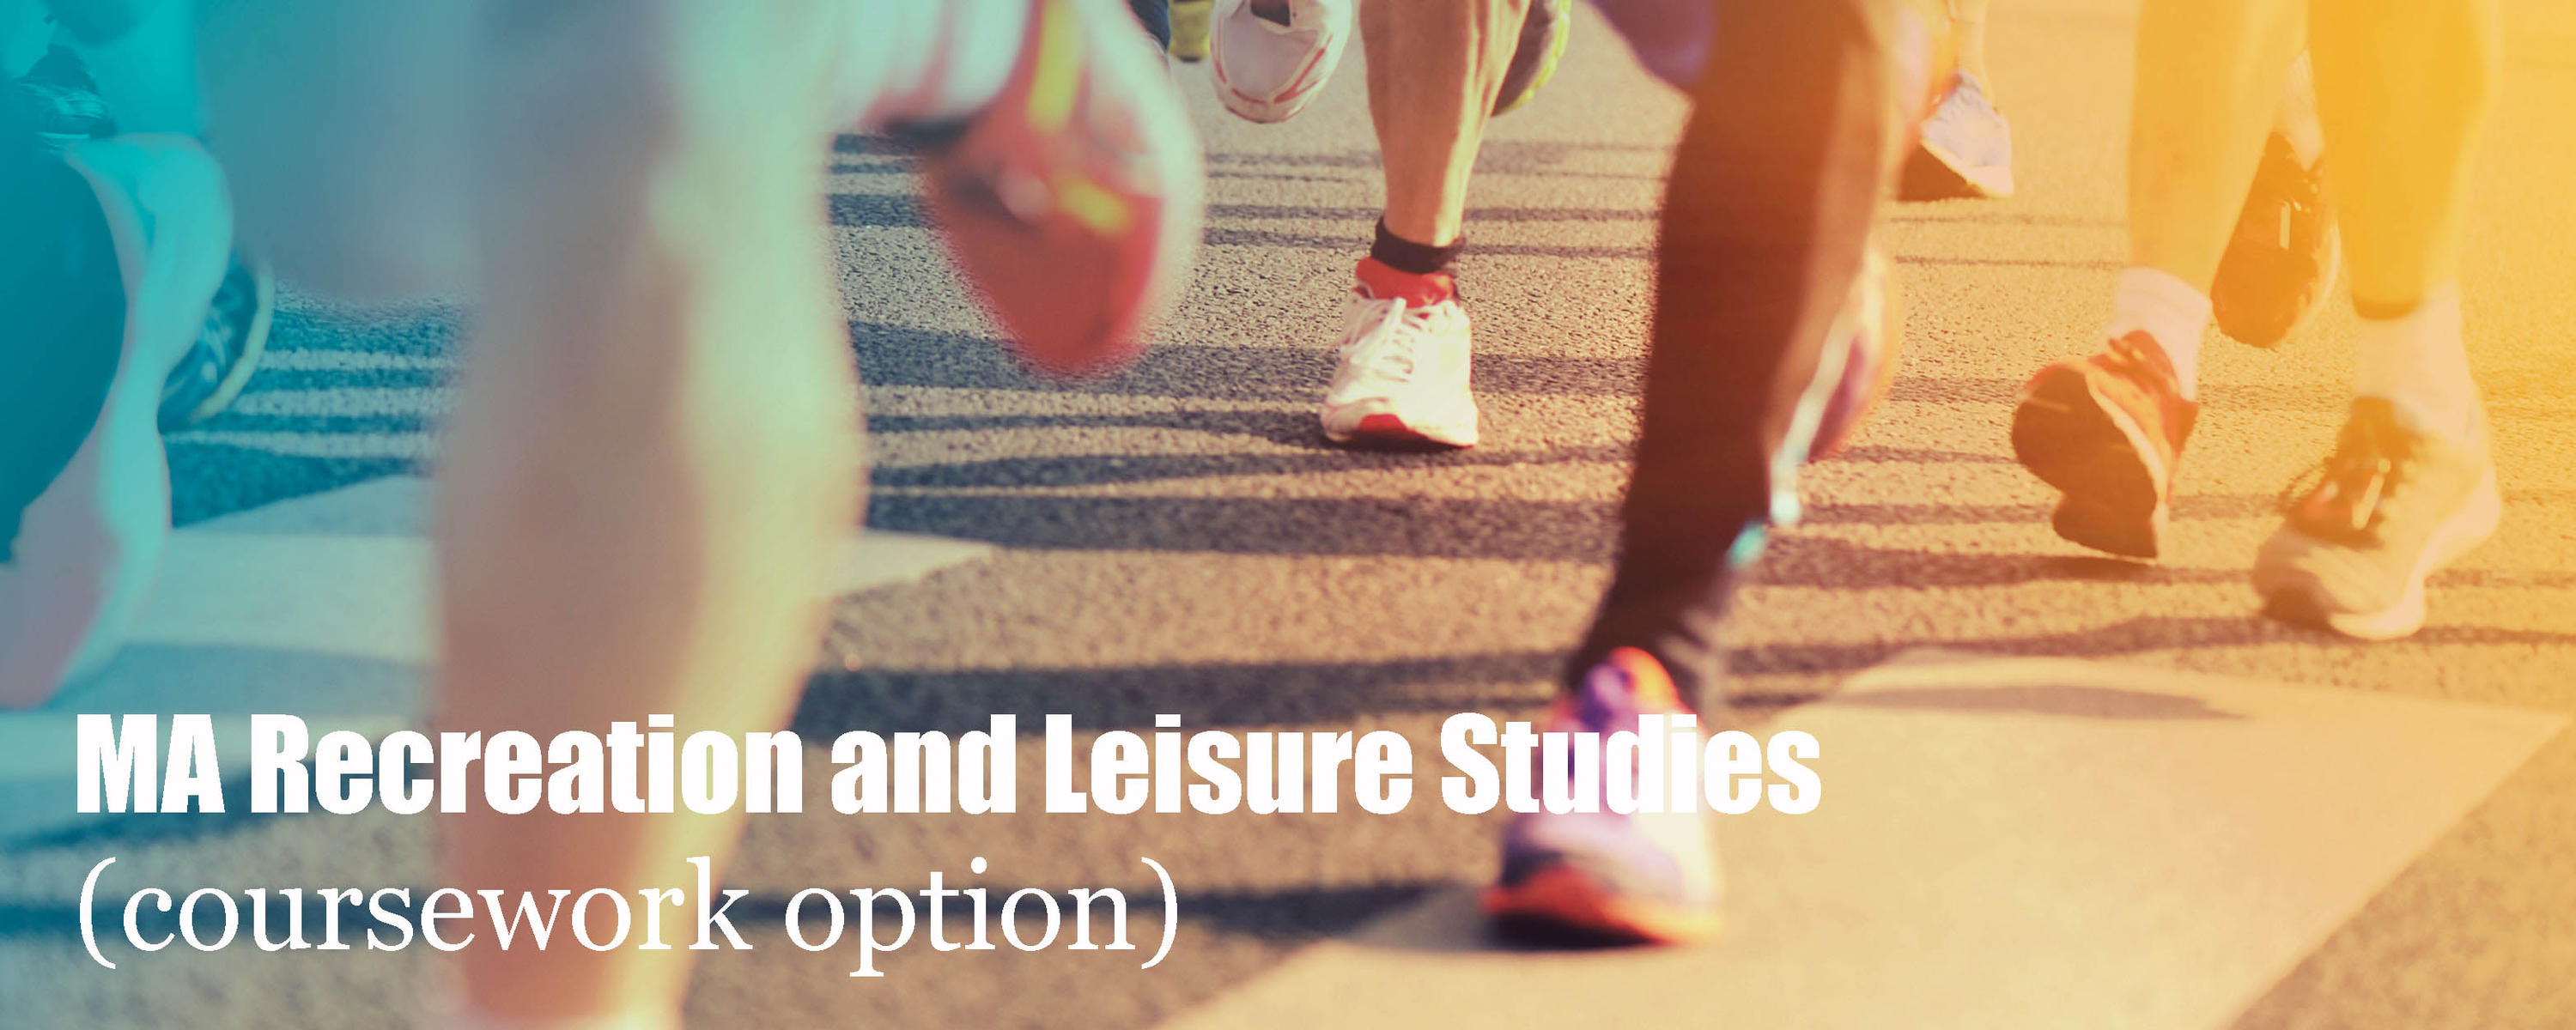 leisure and recreation essay 11 март category recreation & sports review: 0 great britain is a country governed by routine it has fewer public holidays than any other country in europe among official holiday we can mention new year, good friday, easter monday, labour day, christmas and boxing day.